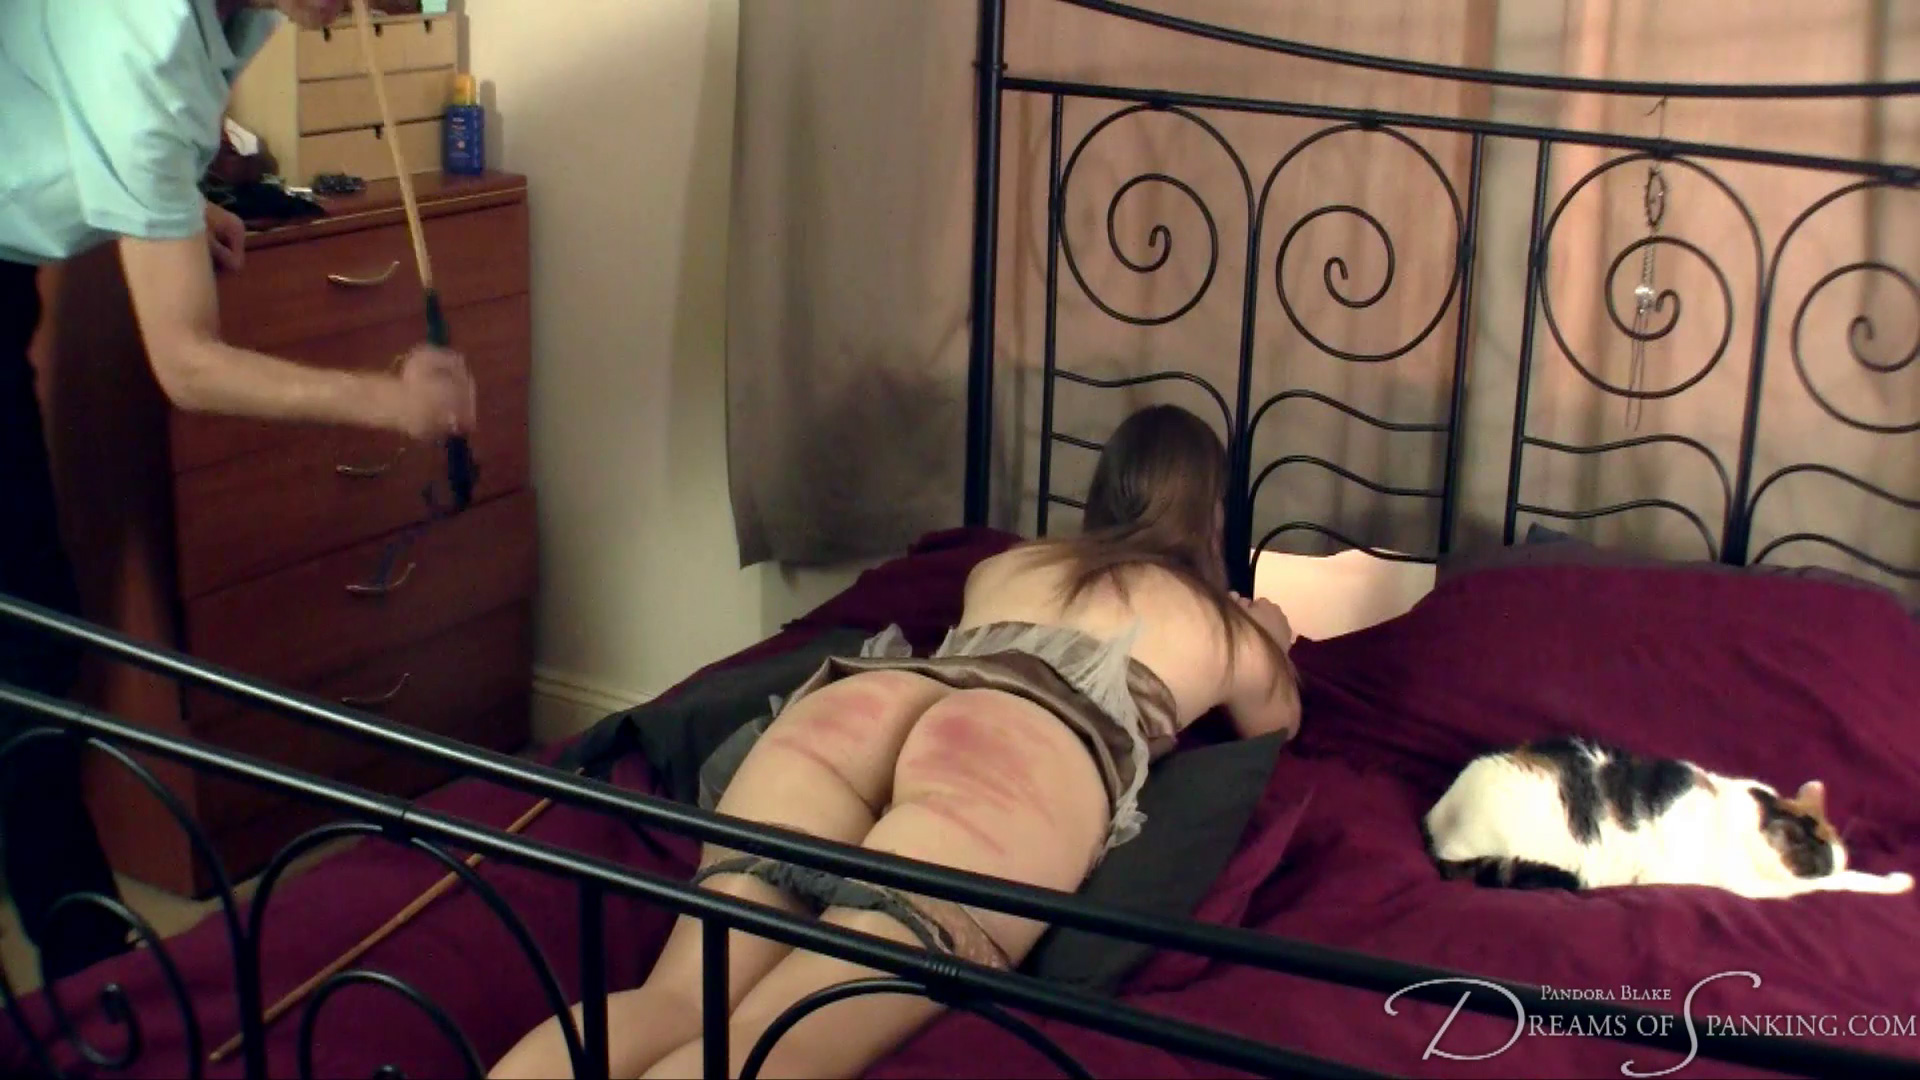 Pandora Blake lifts her bottom for hard cane strokes at Dreams of Spanking